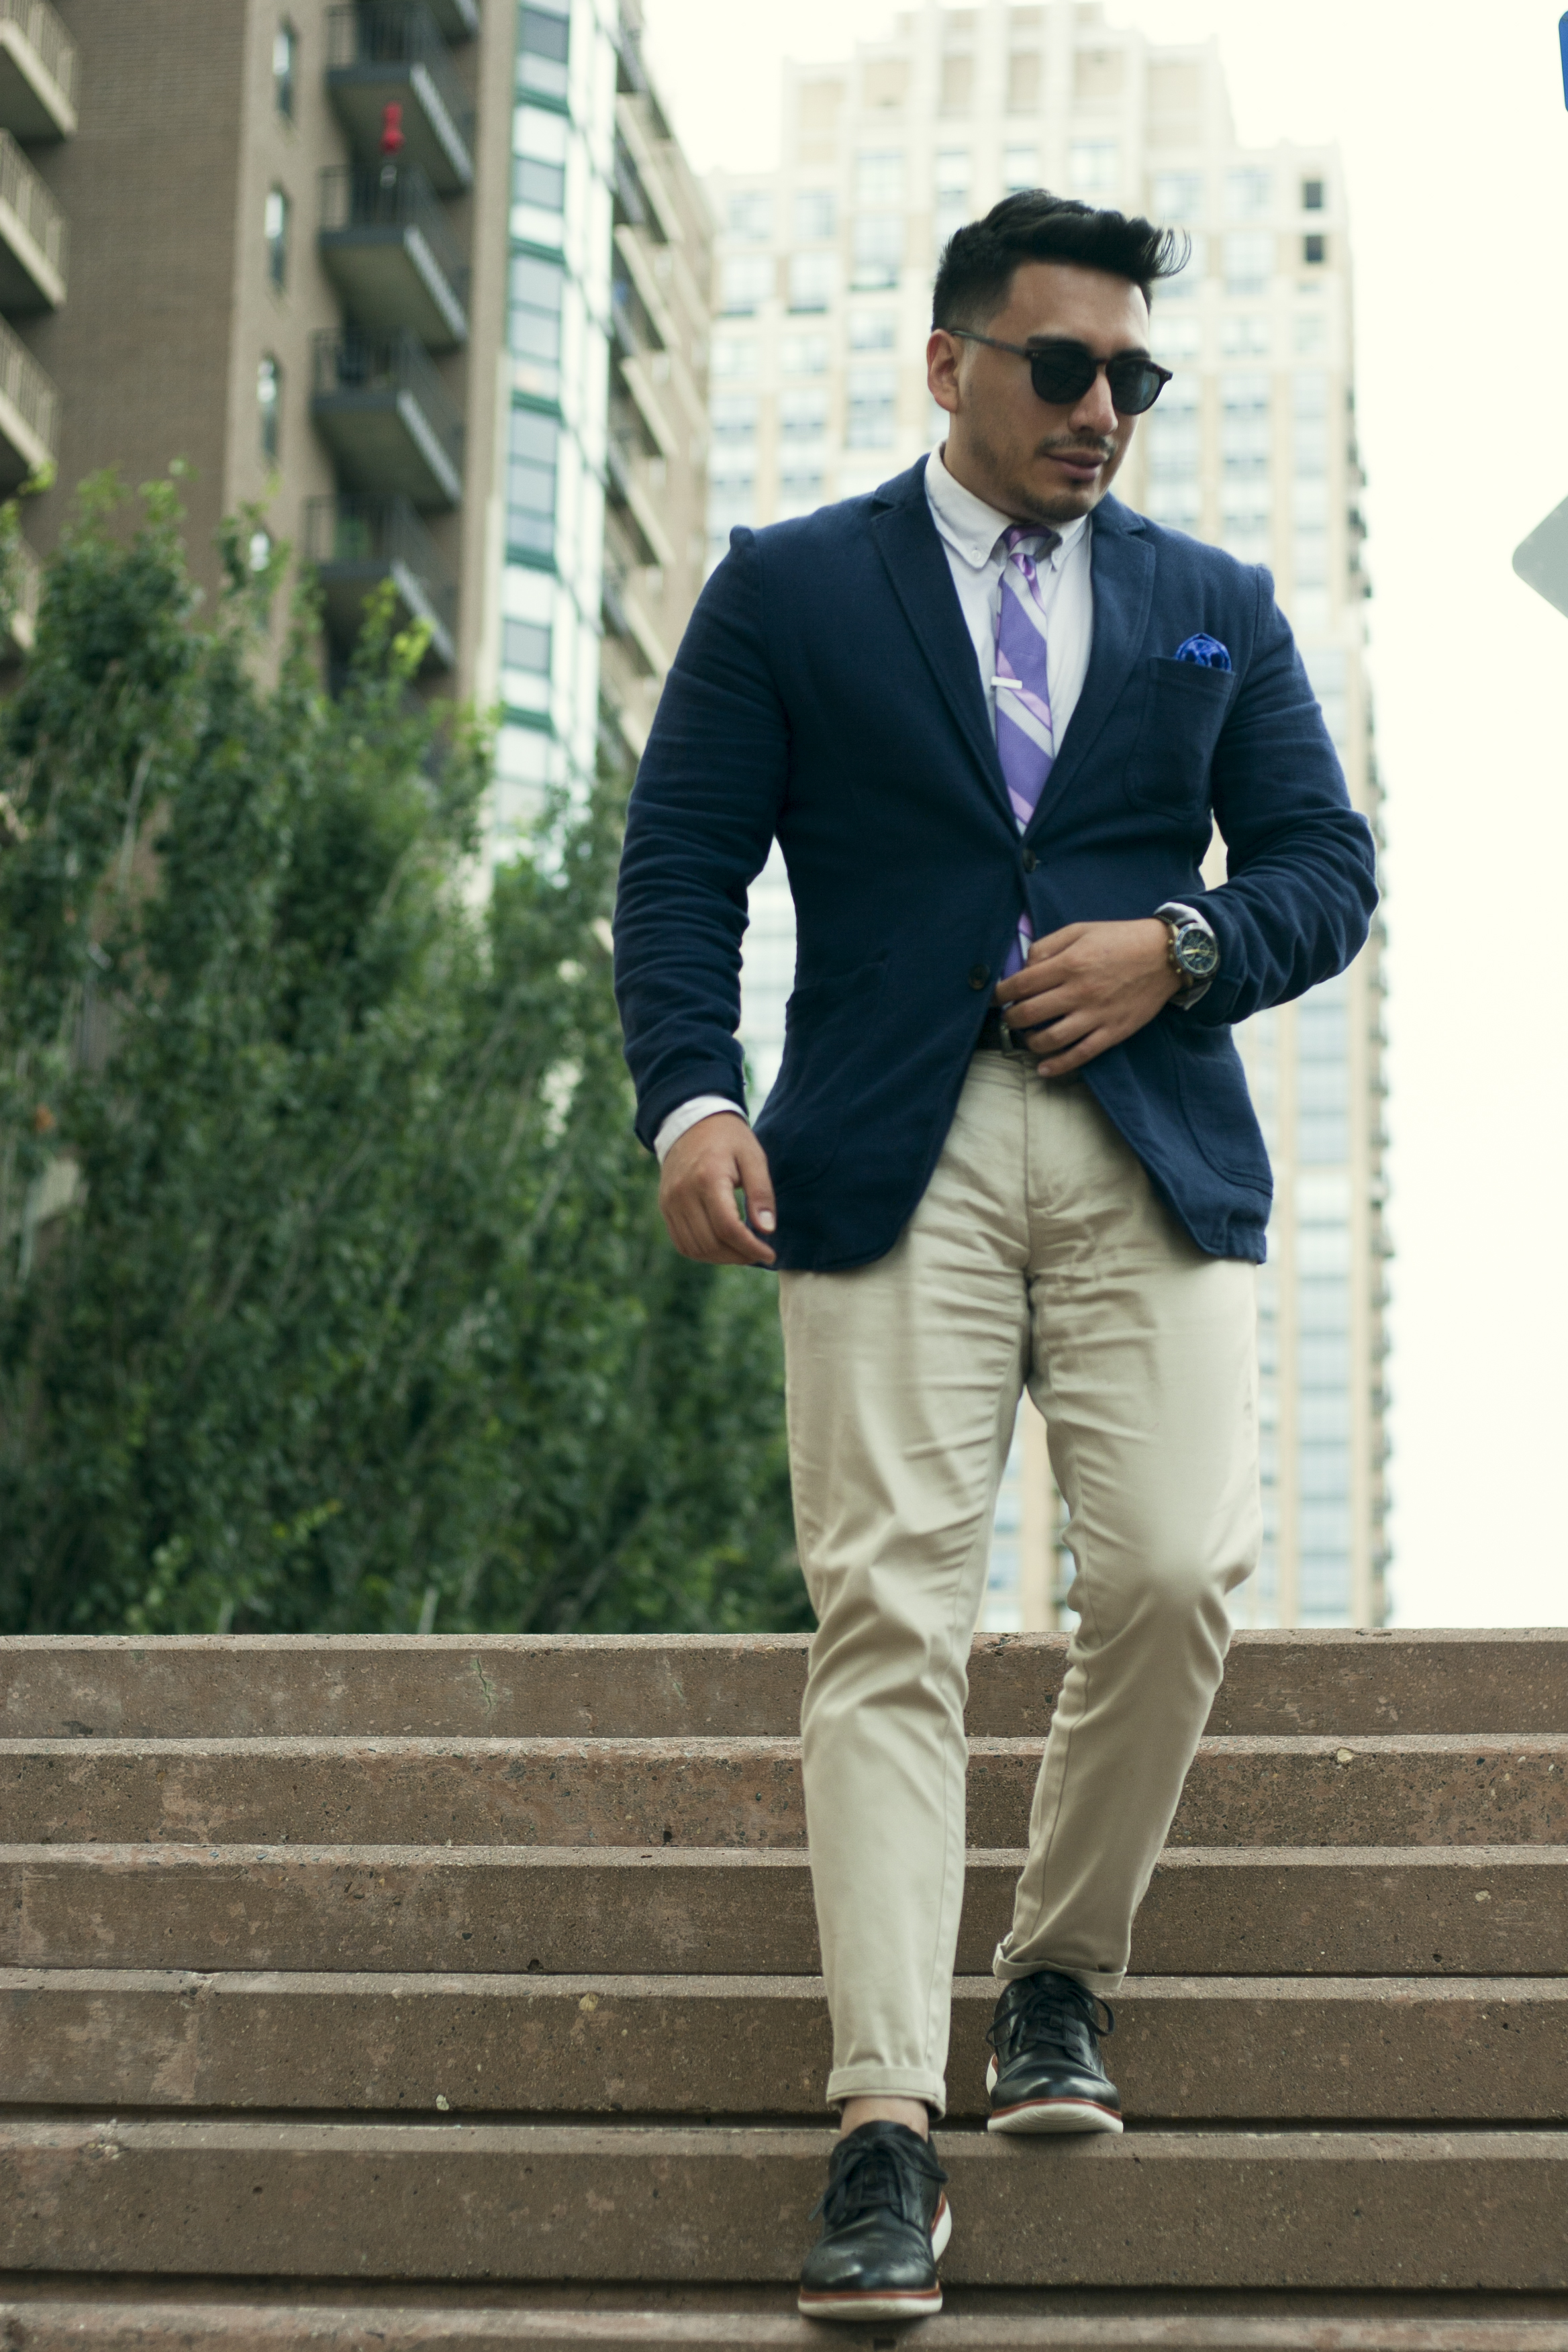 chinos suit jacket rockport shoes tie men